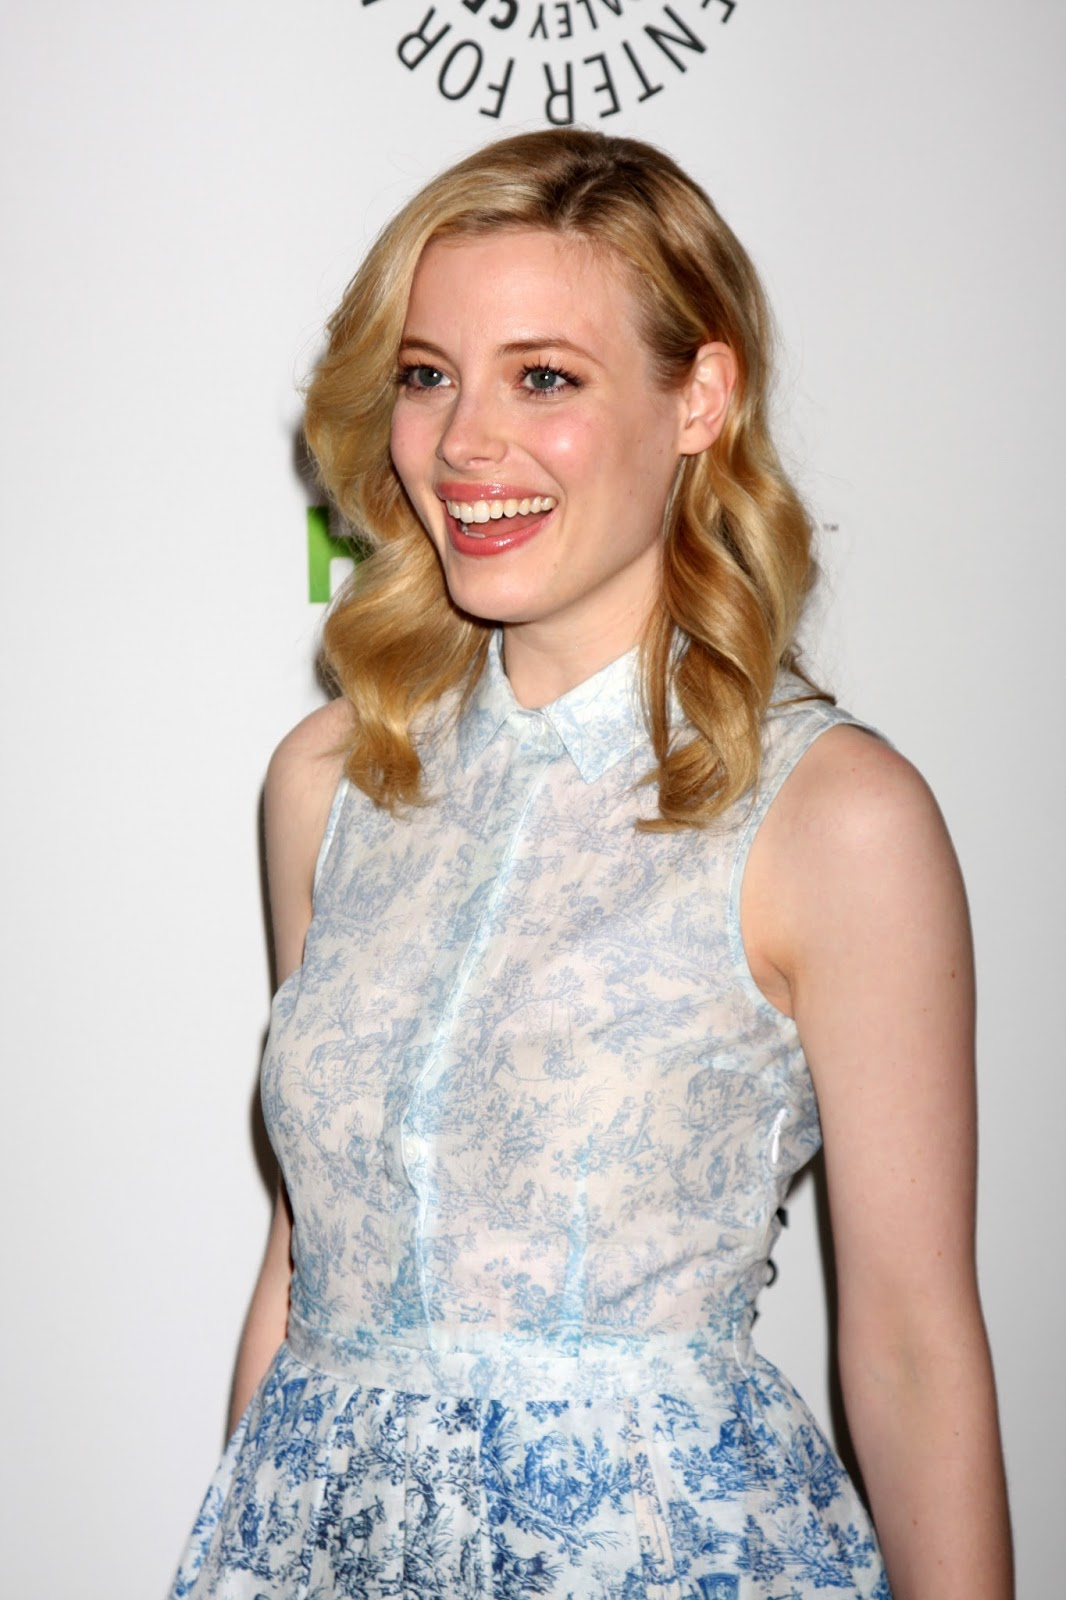 gillian jacobs cute hq photos at the paley center for media u0026 39 s paleyfest 2012 honoring community